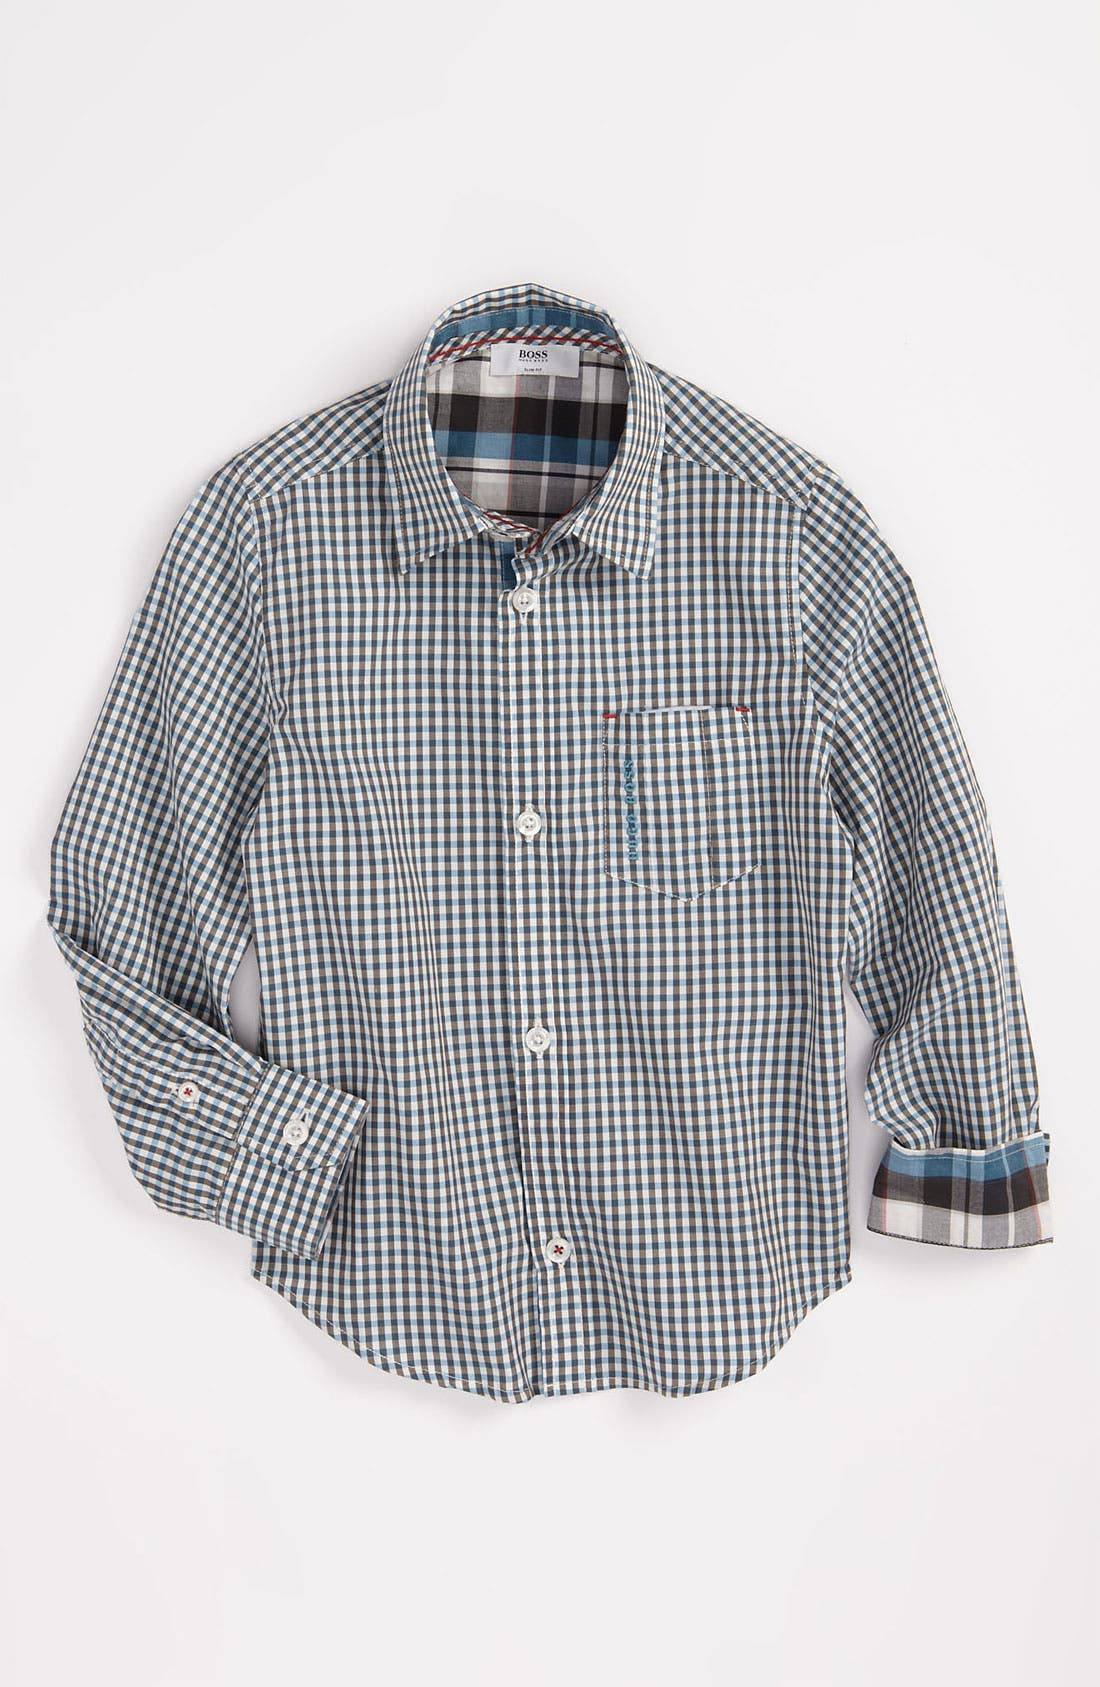 Alternate Image 1 Selected - BOSS Kidswear Check Print Poplin Shirt (Big Boys)